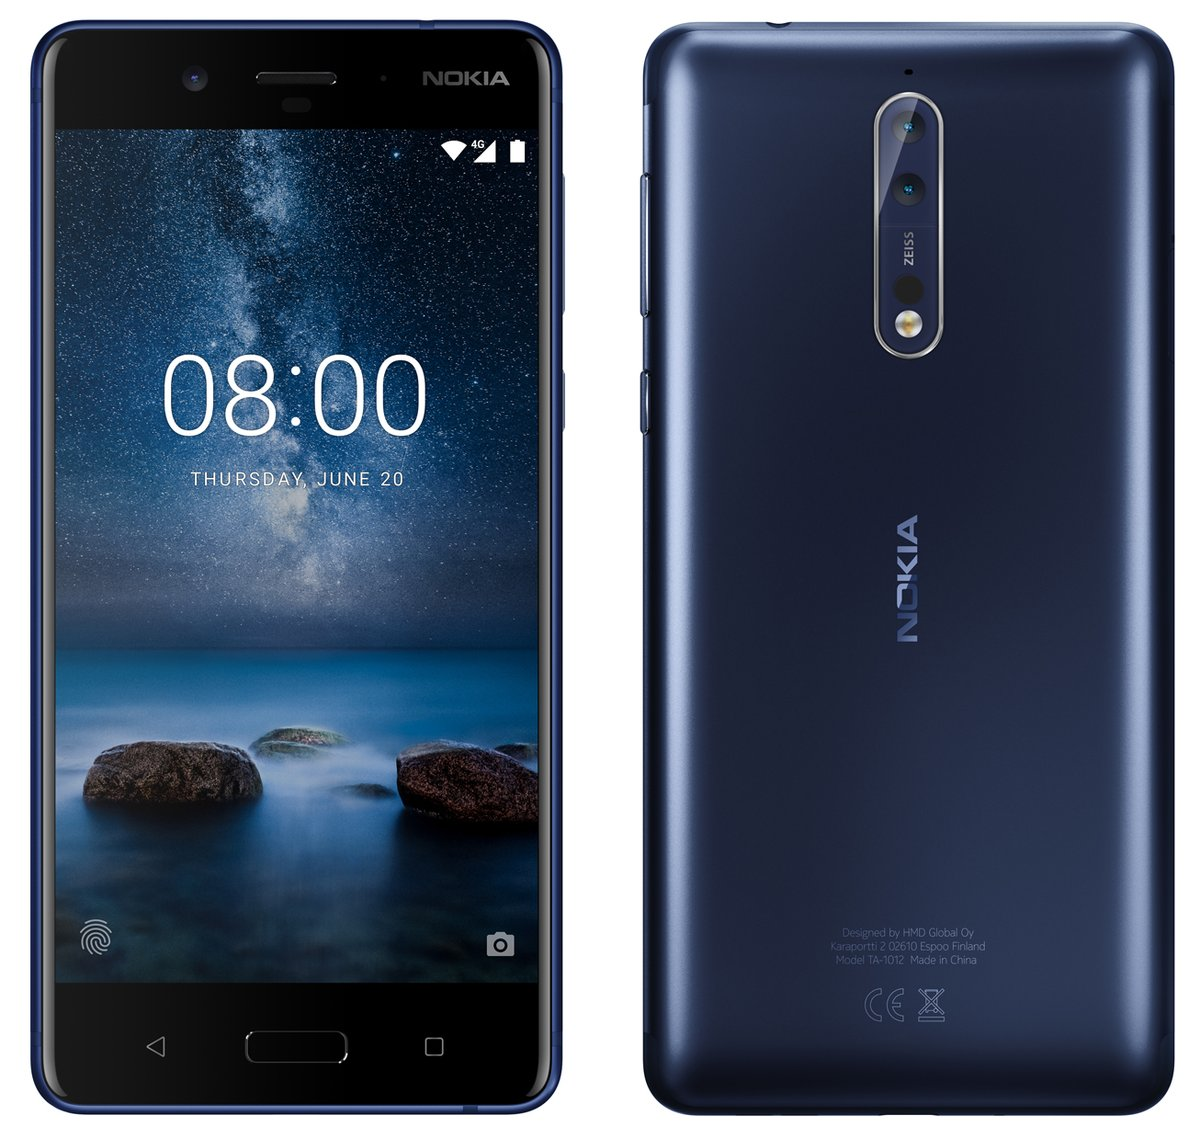 Nokia 8 Render Leaks Online, Could be Officially Unveiled on July 31